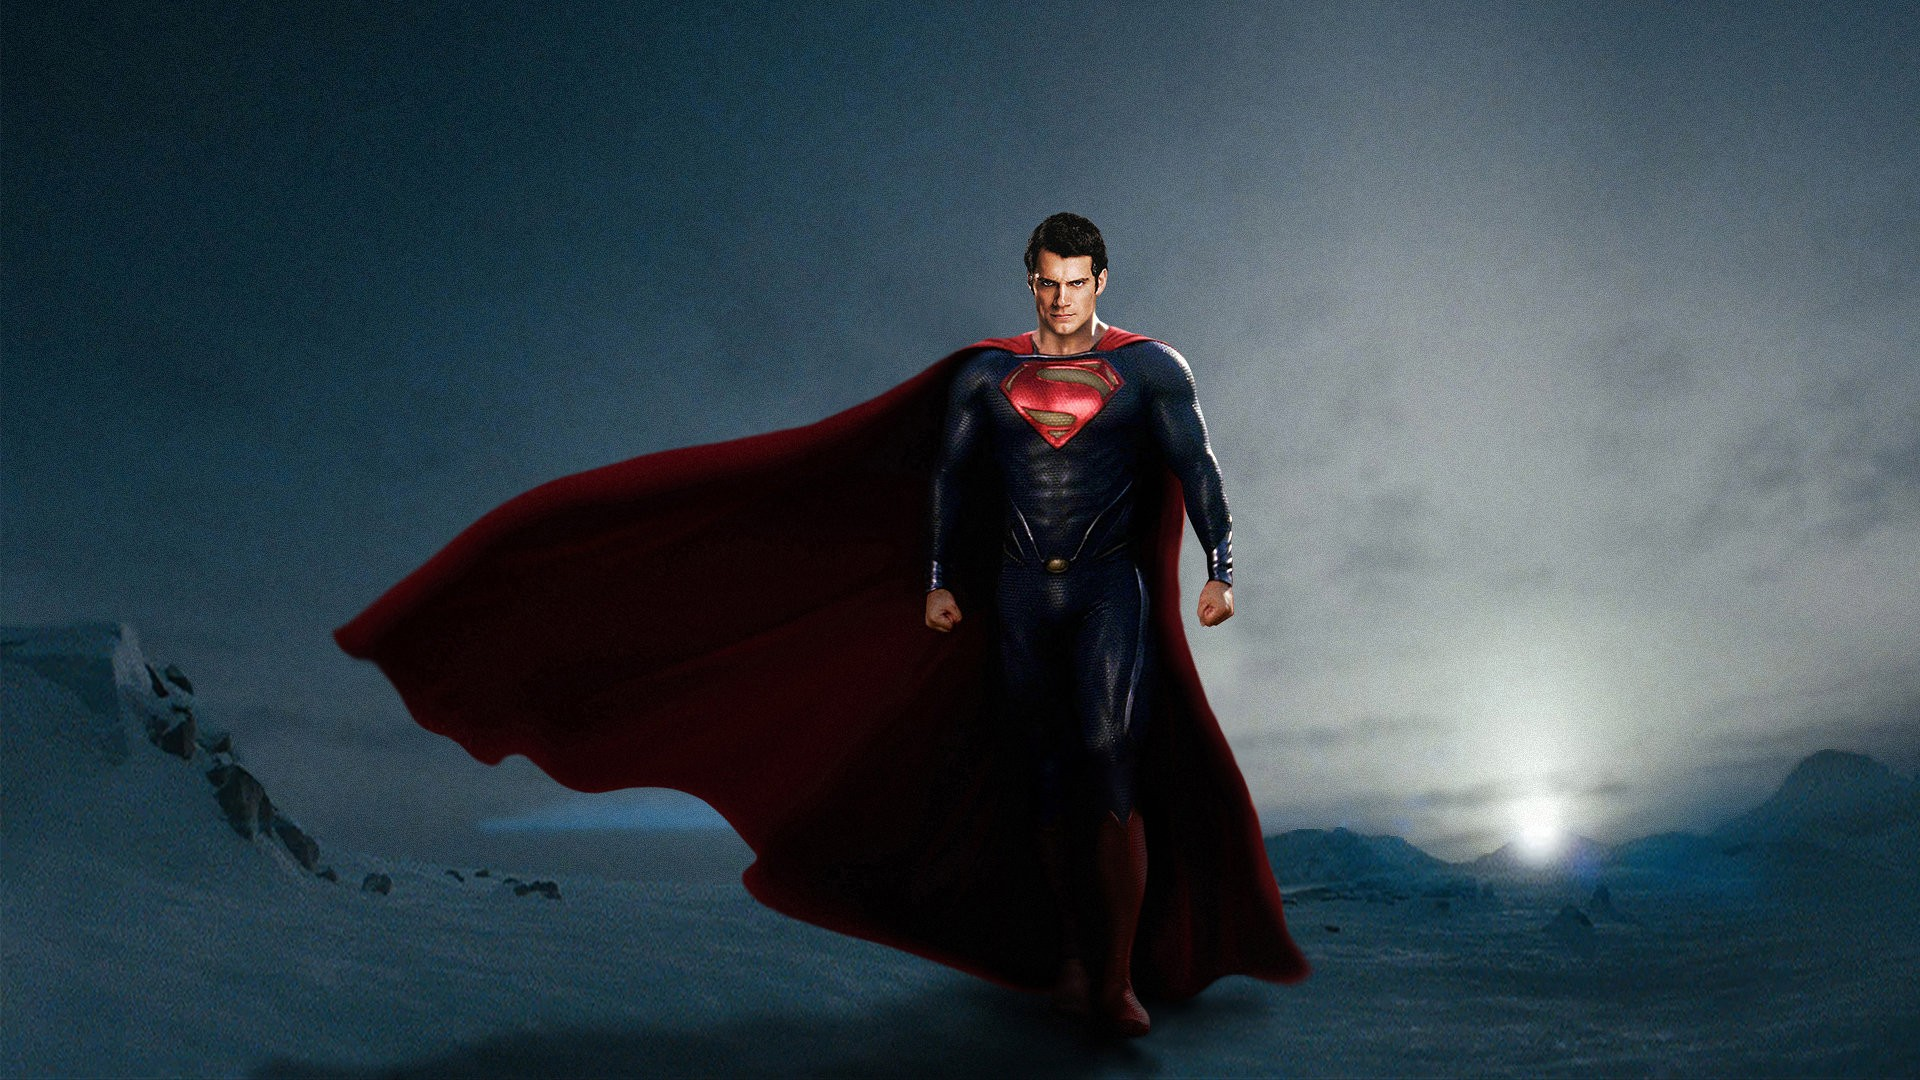 Superman Man Of Steel Logo Wallpapers 1080p Is Cool Wallpapers